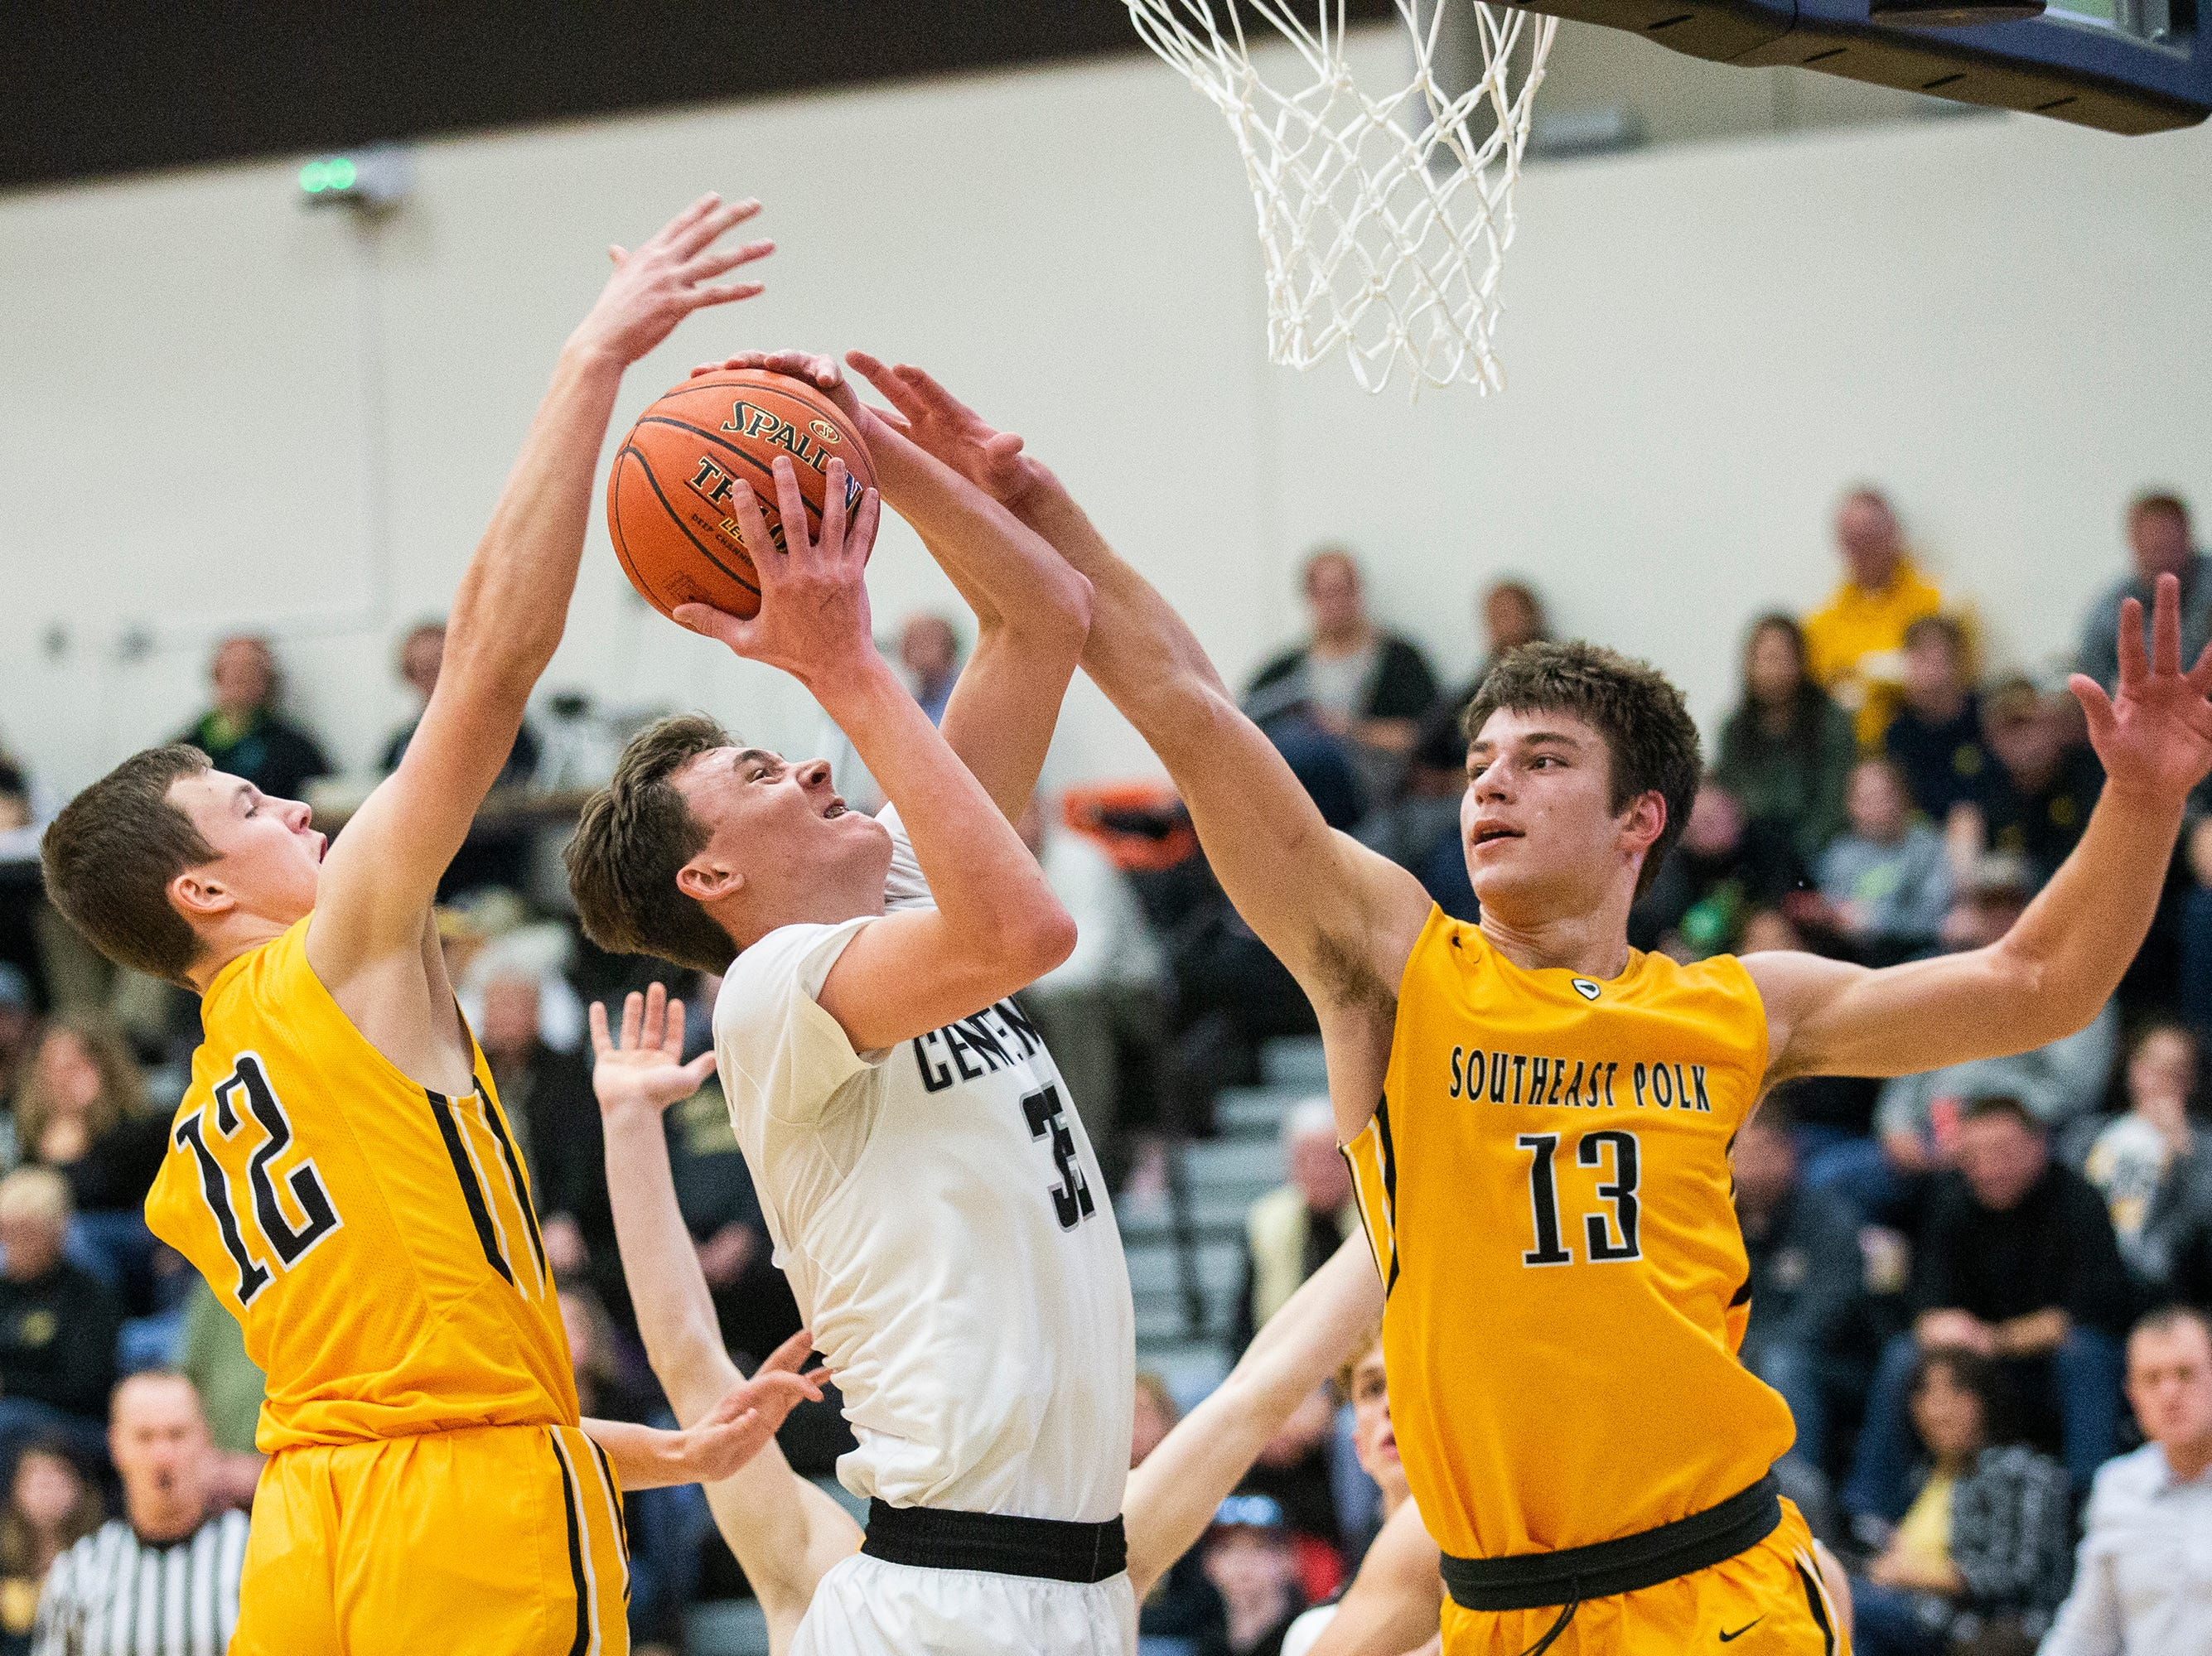 Centennial's Cody McCullough tries to shoot the ball against SEP defenders Fred Johnson and Dominic Caggiano during the Southeast Polk vs. Ankeny Centennial boy's basketball game on Tuesday, Nov. 27, 2018, at Ankeny Centennial High School.